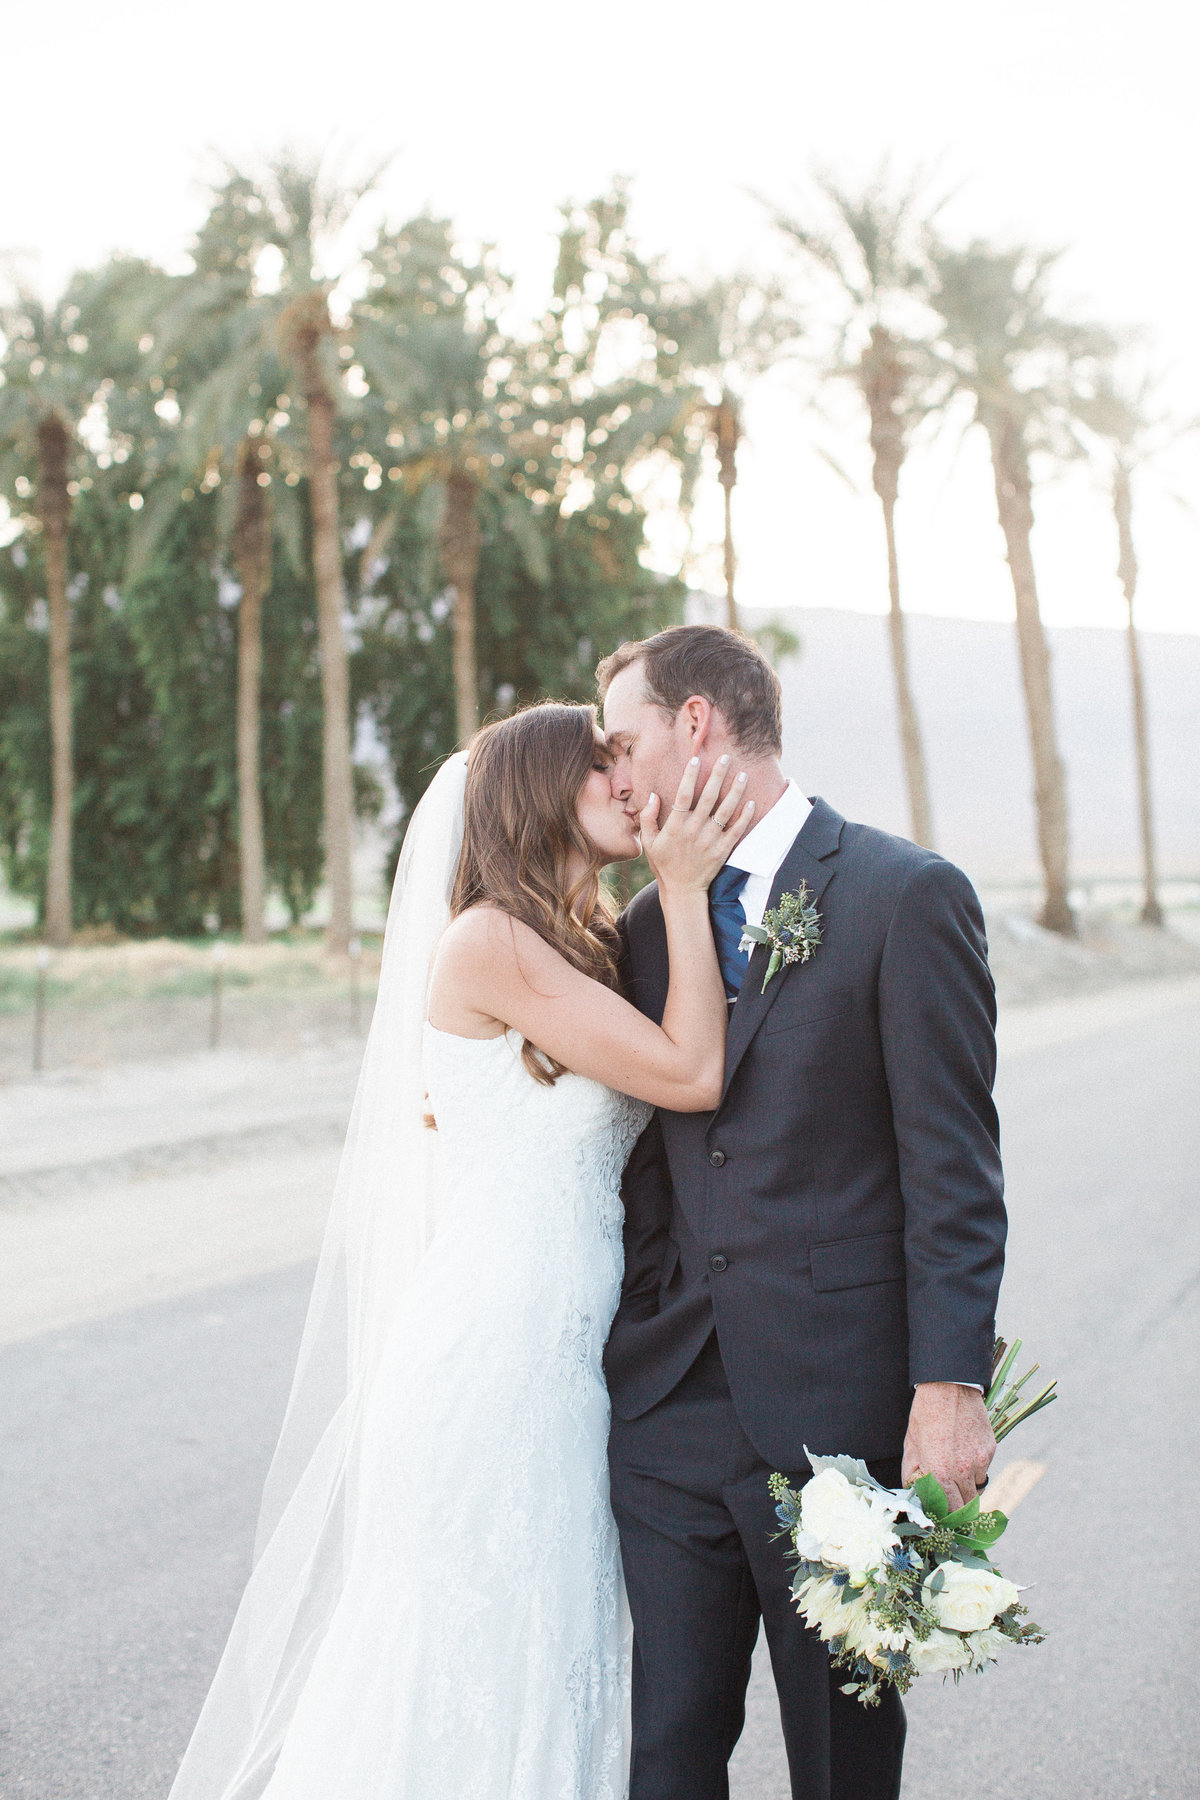 Jenn-Scott-PalmSprings-Ca-Wedding-LagoVistaRanch-GabriellaSantosPhotography-BrideGroom-PRINT-21